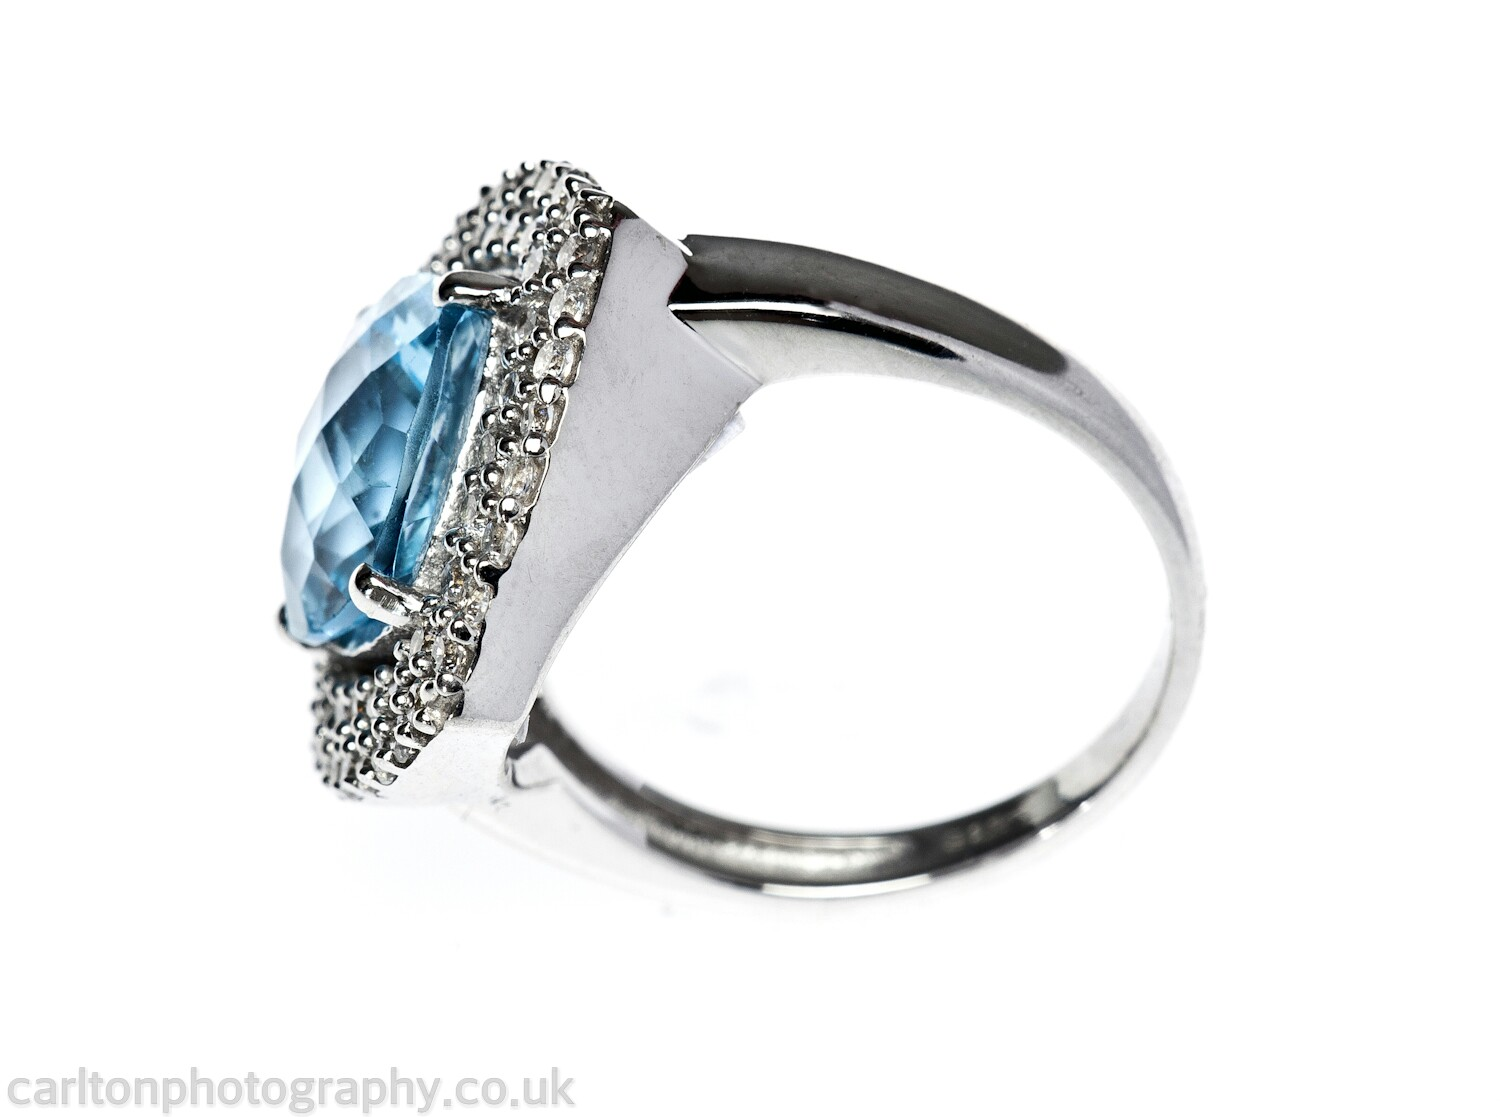 jewellery photography manchester